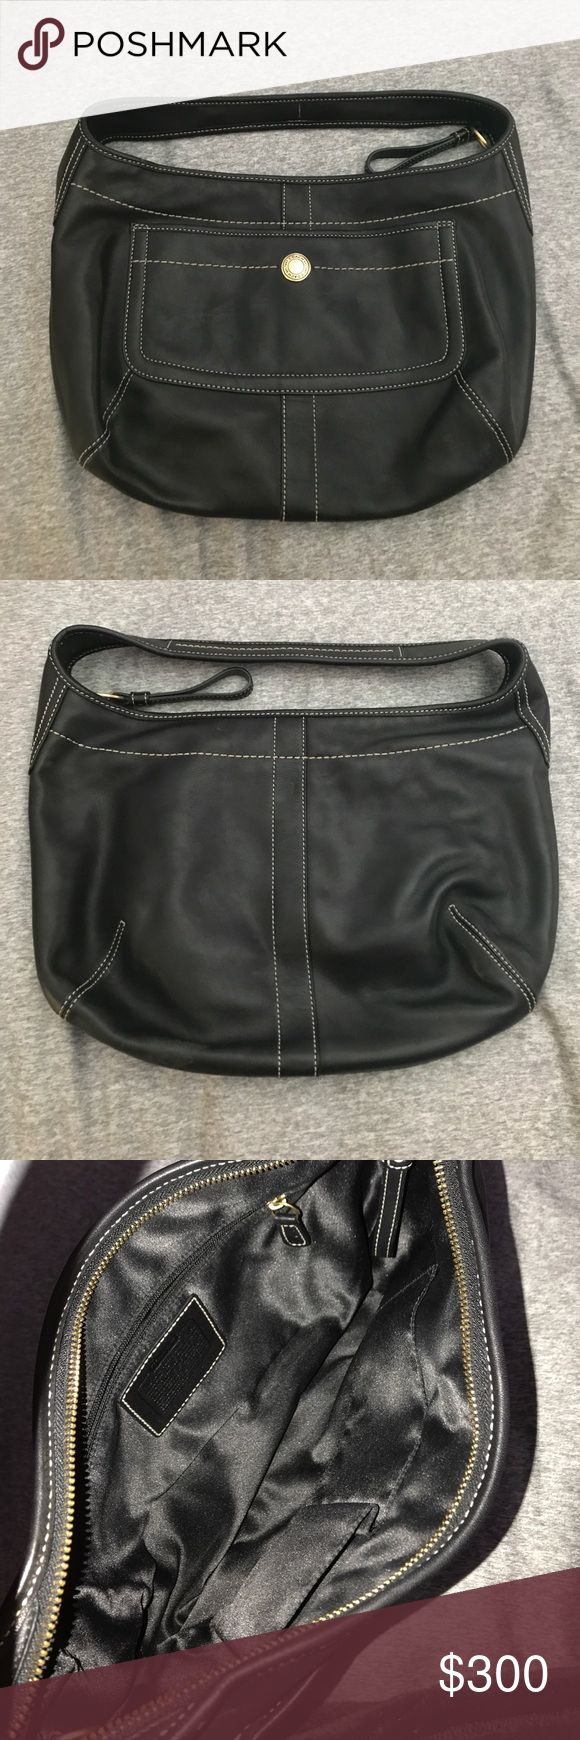 Black Classic Coach Pocketbook/ Shoulder Bag Black Classic Coach Pocketbook/ Shoulder Bag. Used but in excellent condition. No scratches on leather. Comes with dust bag. Coach Bags Shoulder Bags